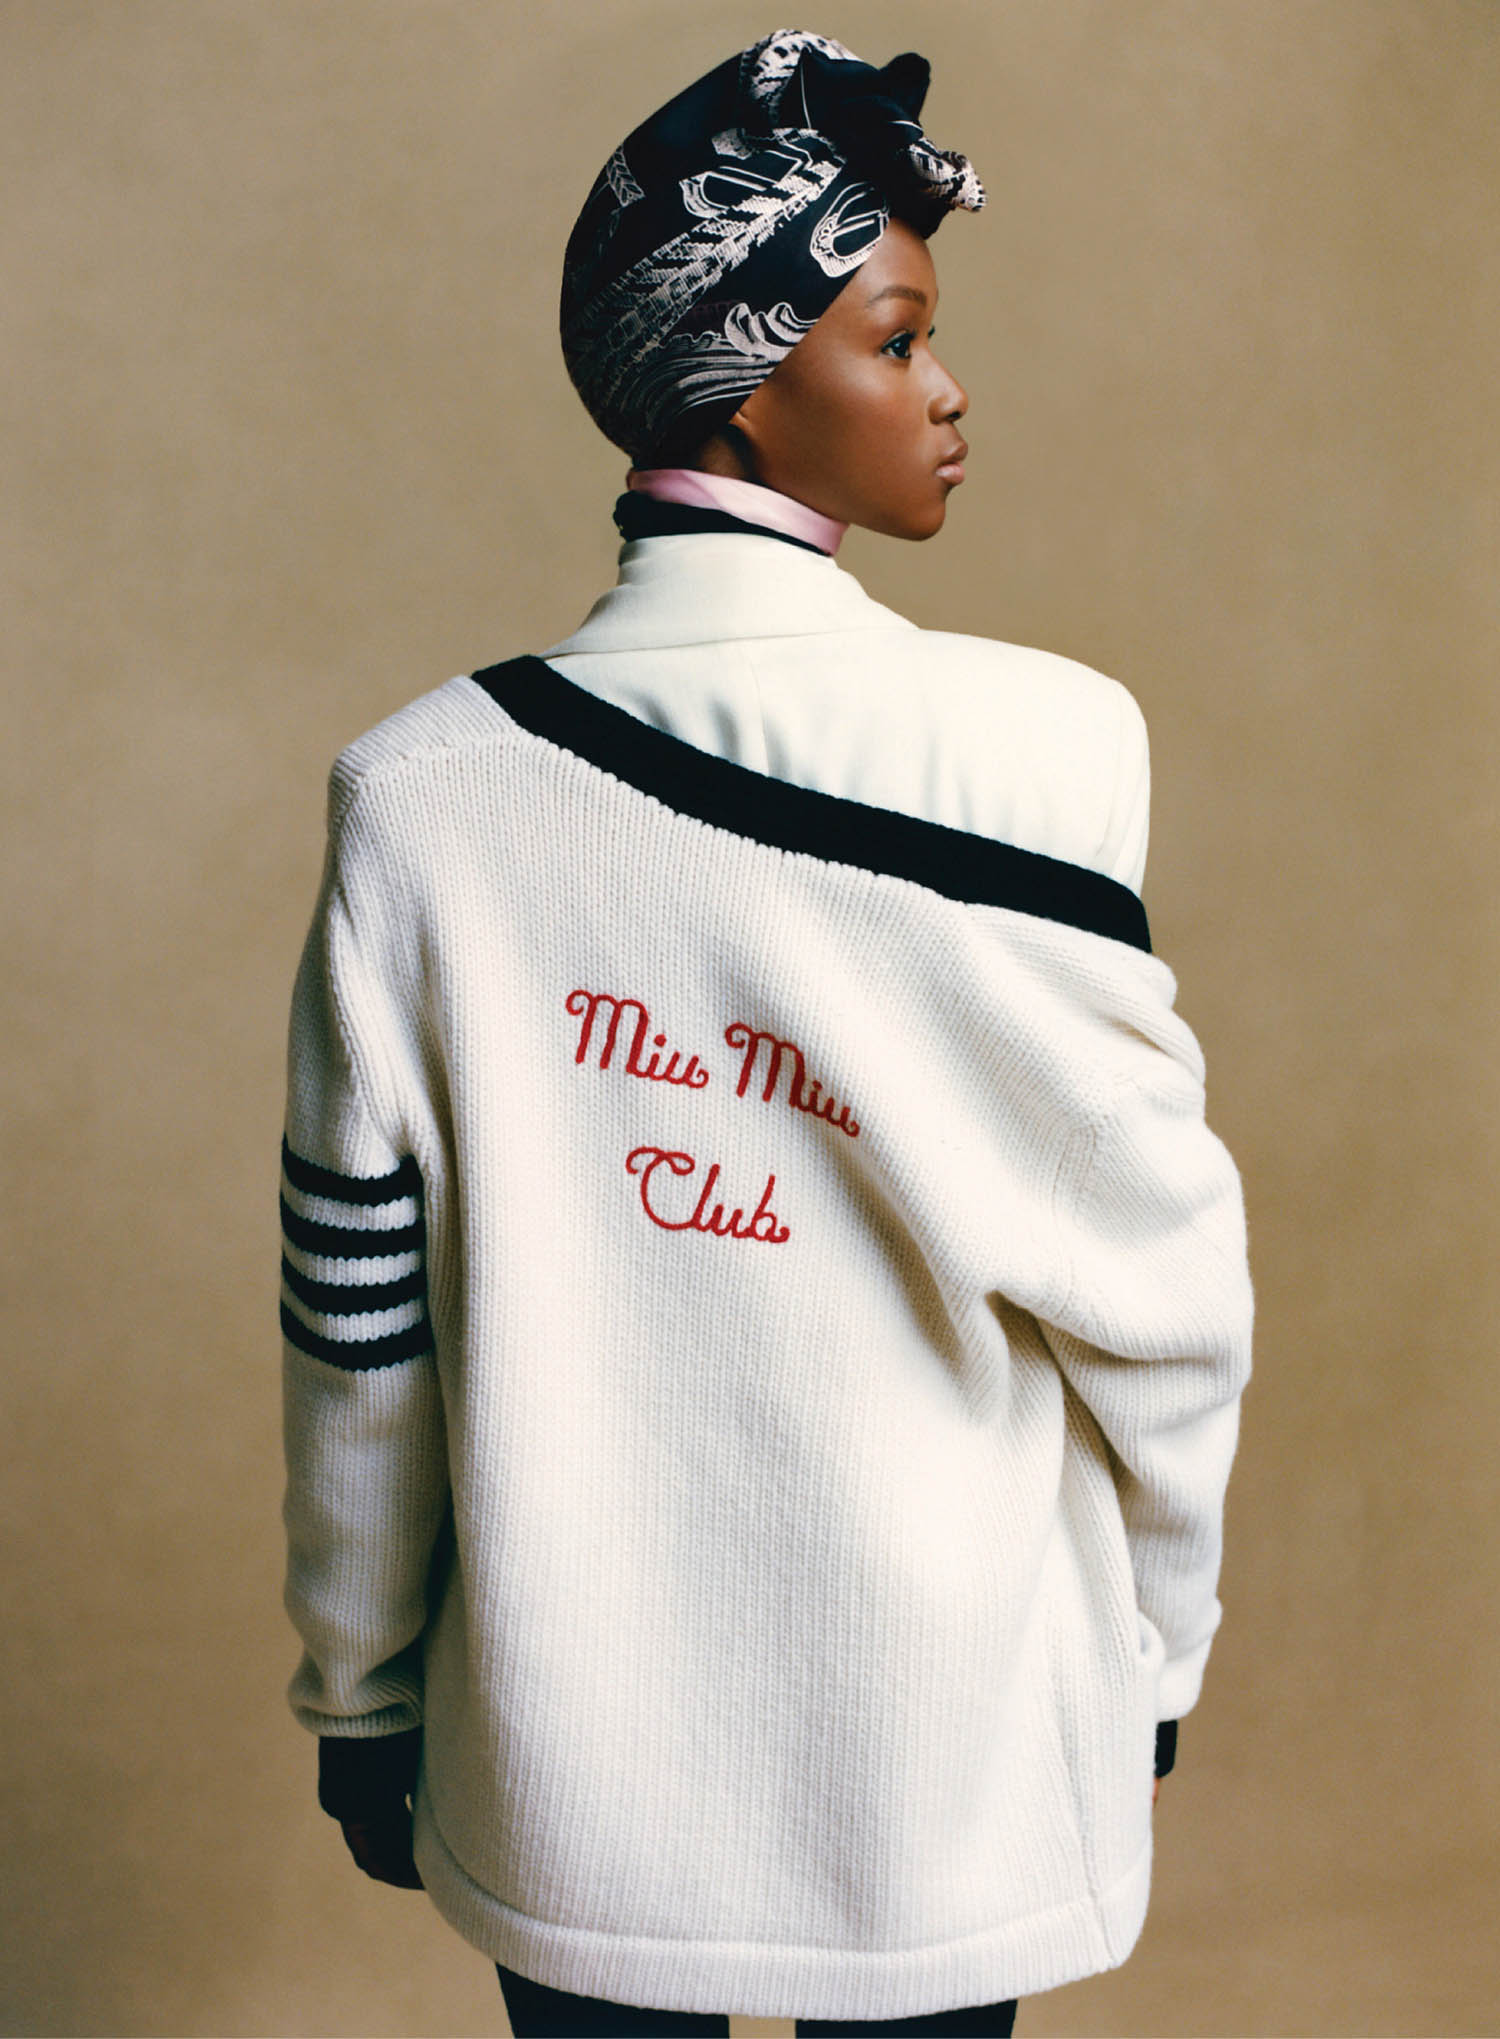 Munaiya Bilal by Alexander Saladrigas for InStyle US January 2021